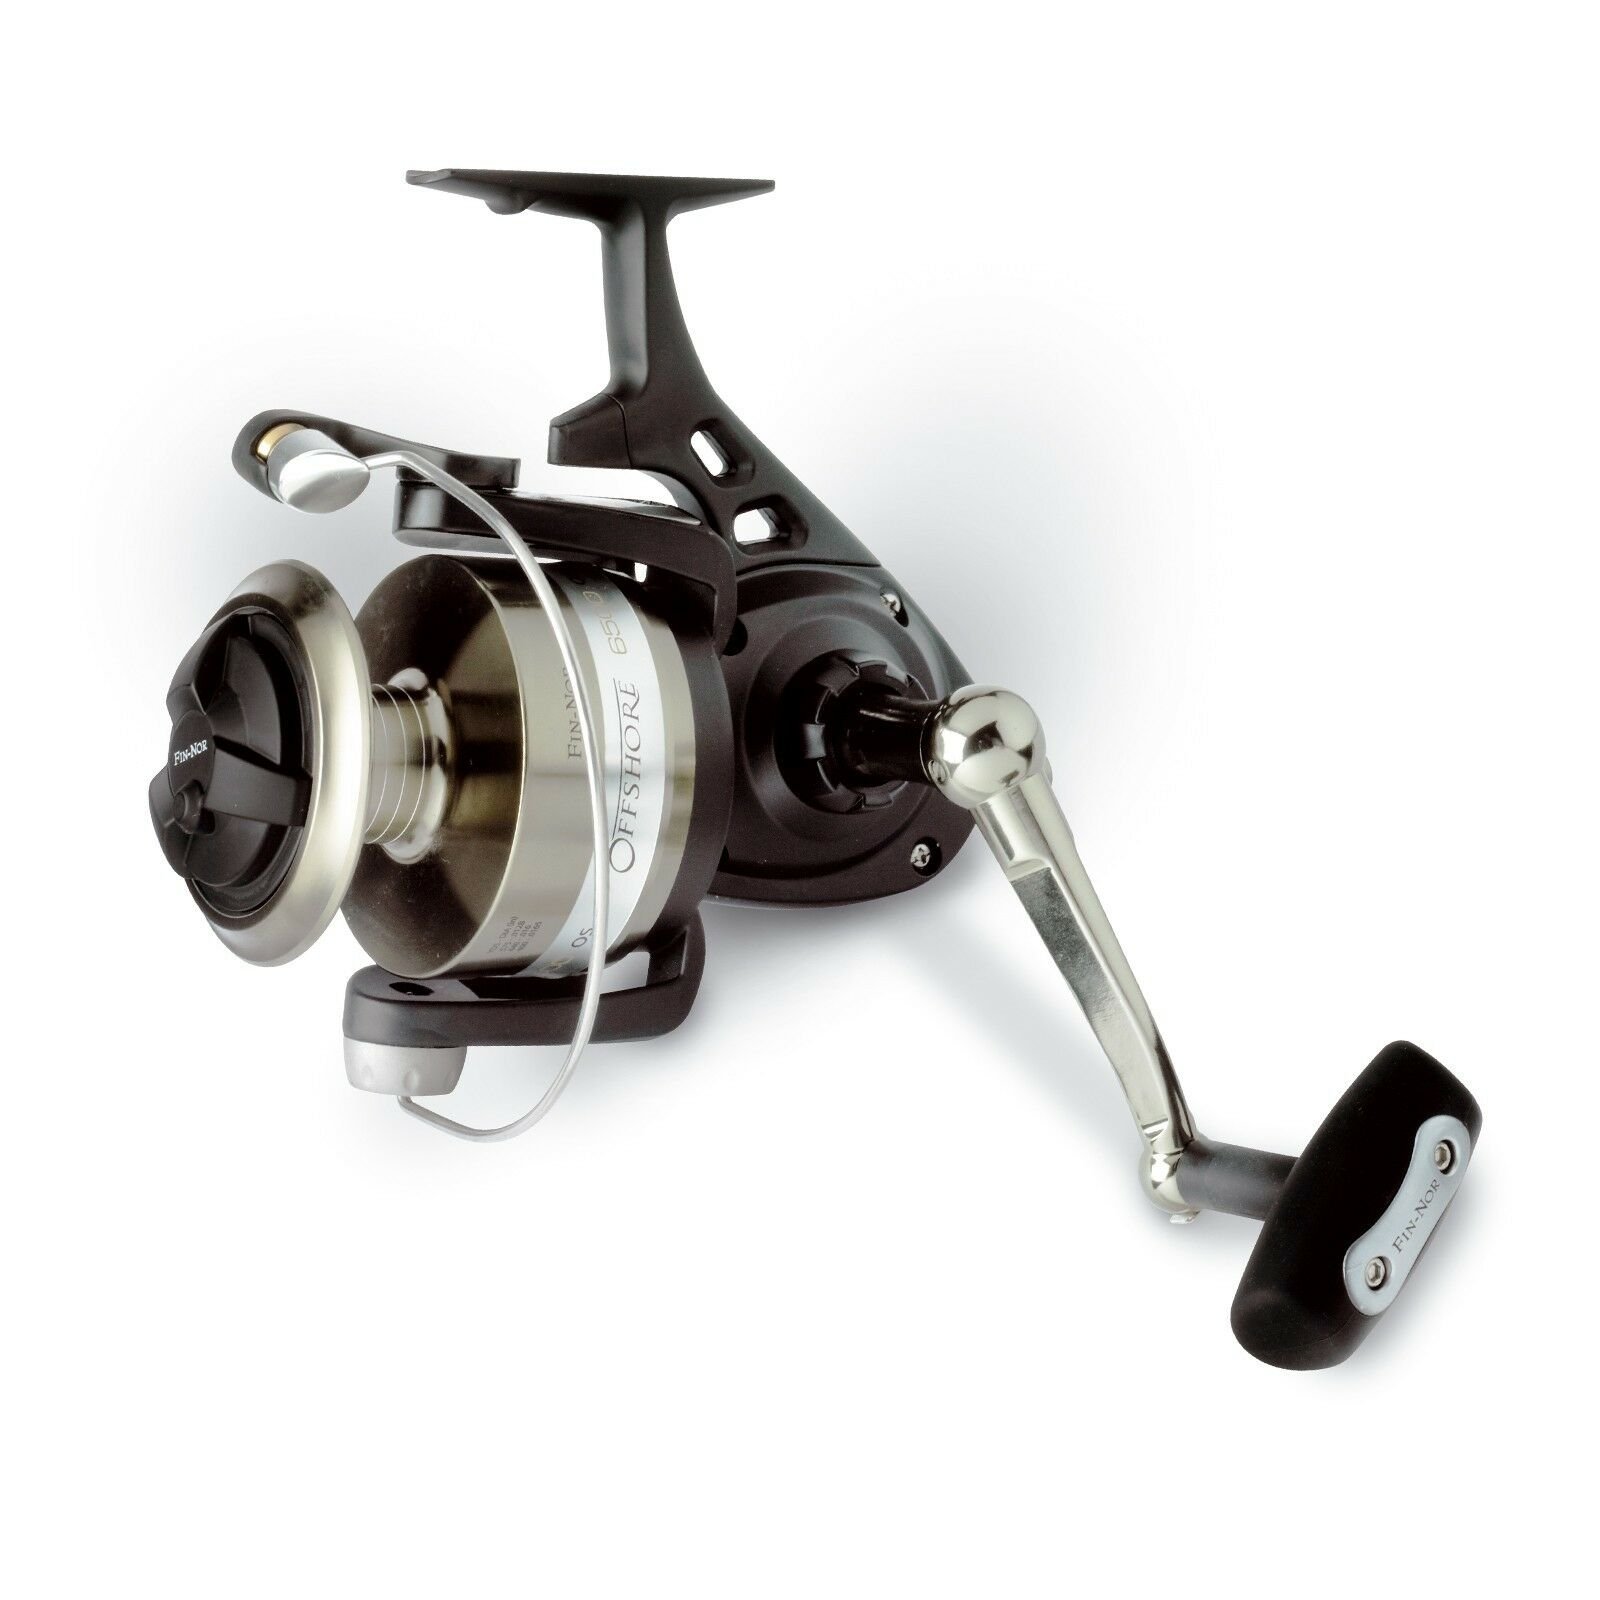 Fin-Nor Spinning Off Shore 4.4:1 Saltwater Spinning Fin-Nor Fishing Reel - OFS6500A 81c75b